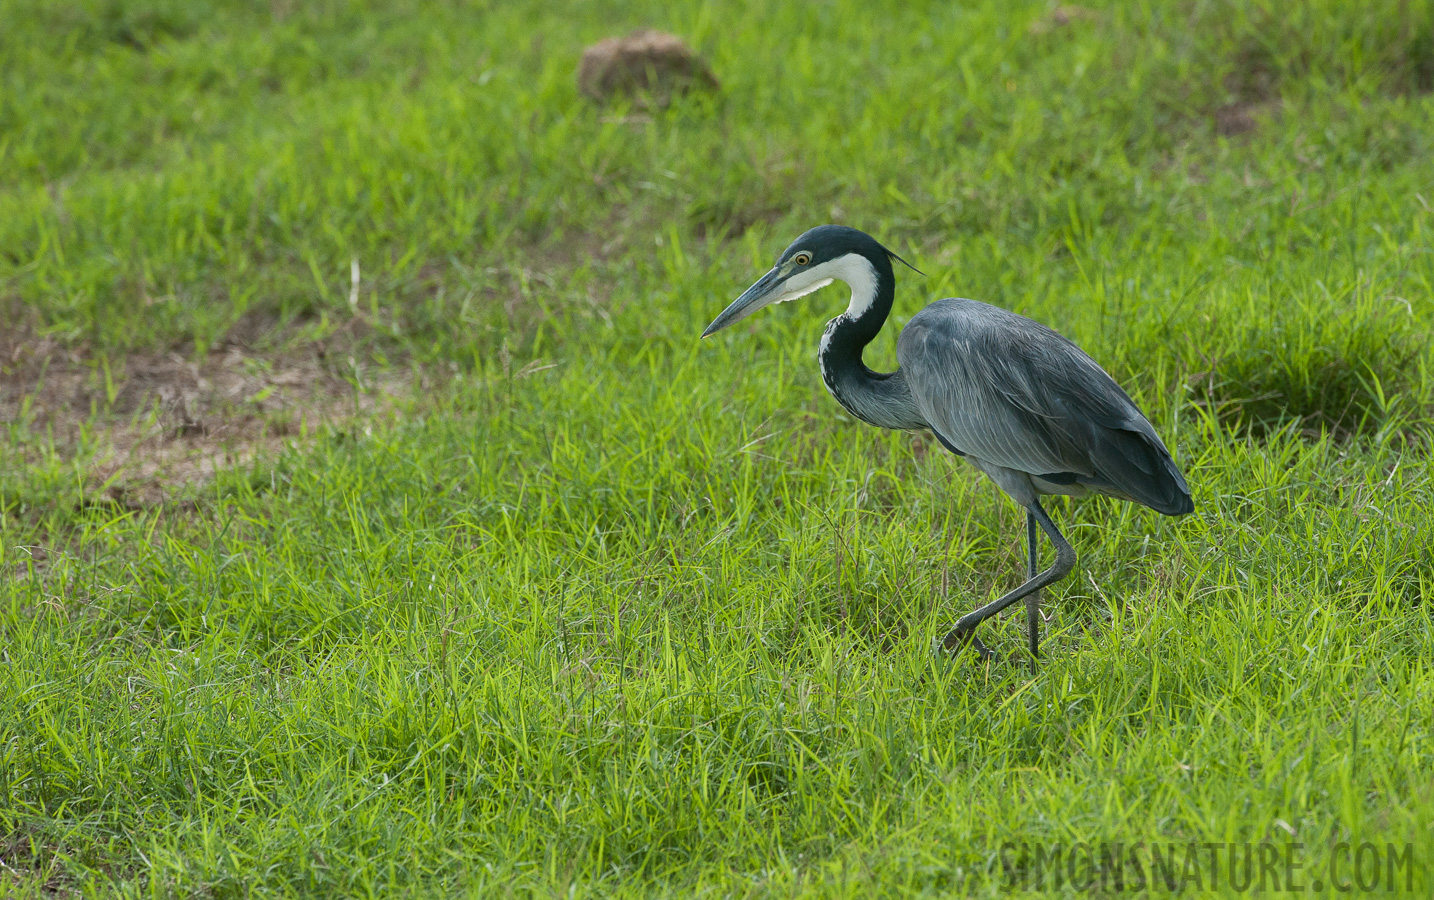 Black-headed heron [Ardea melanocephala]